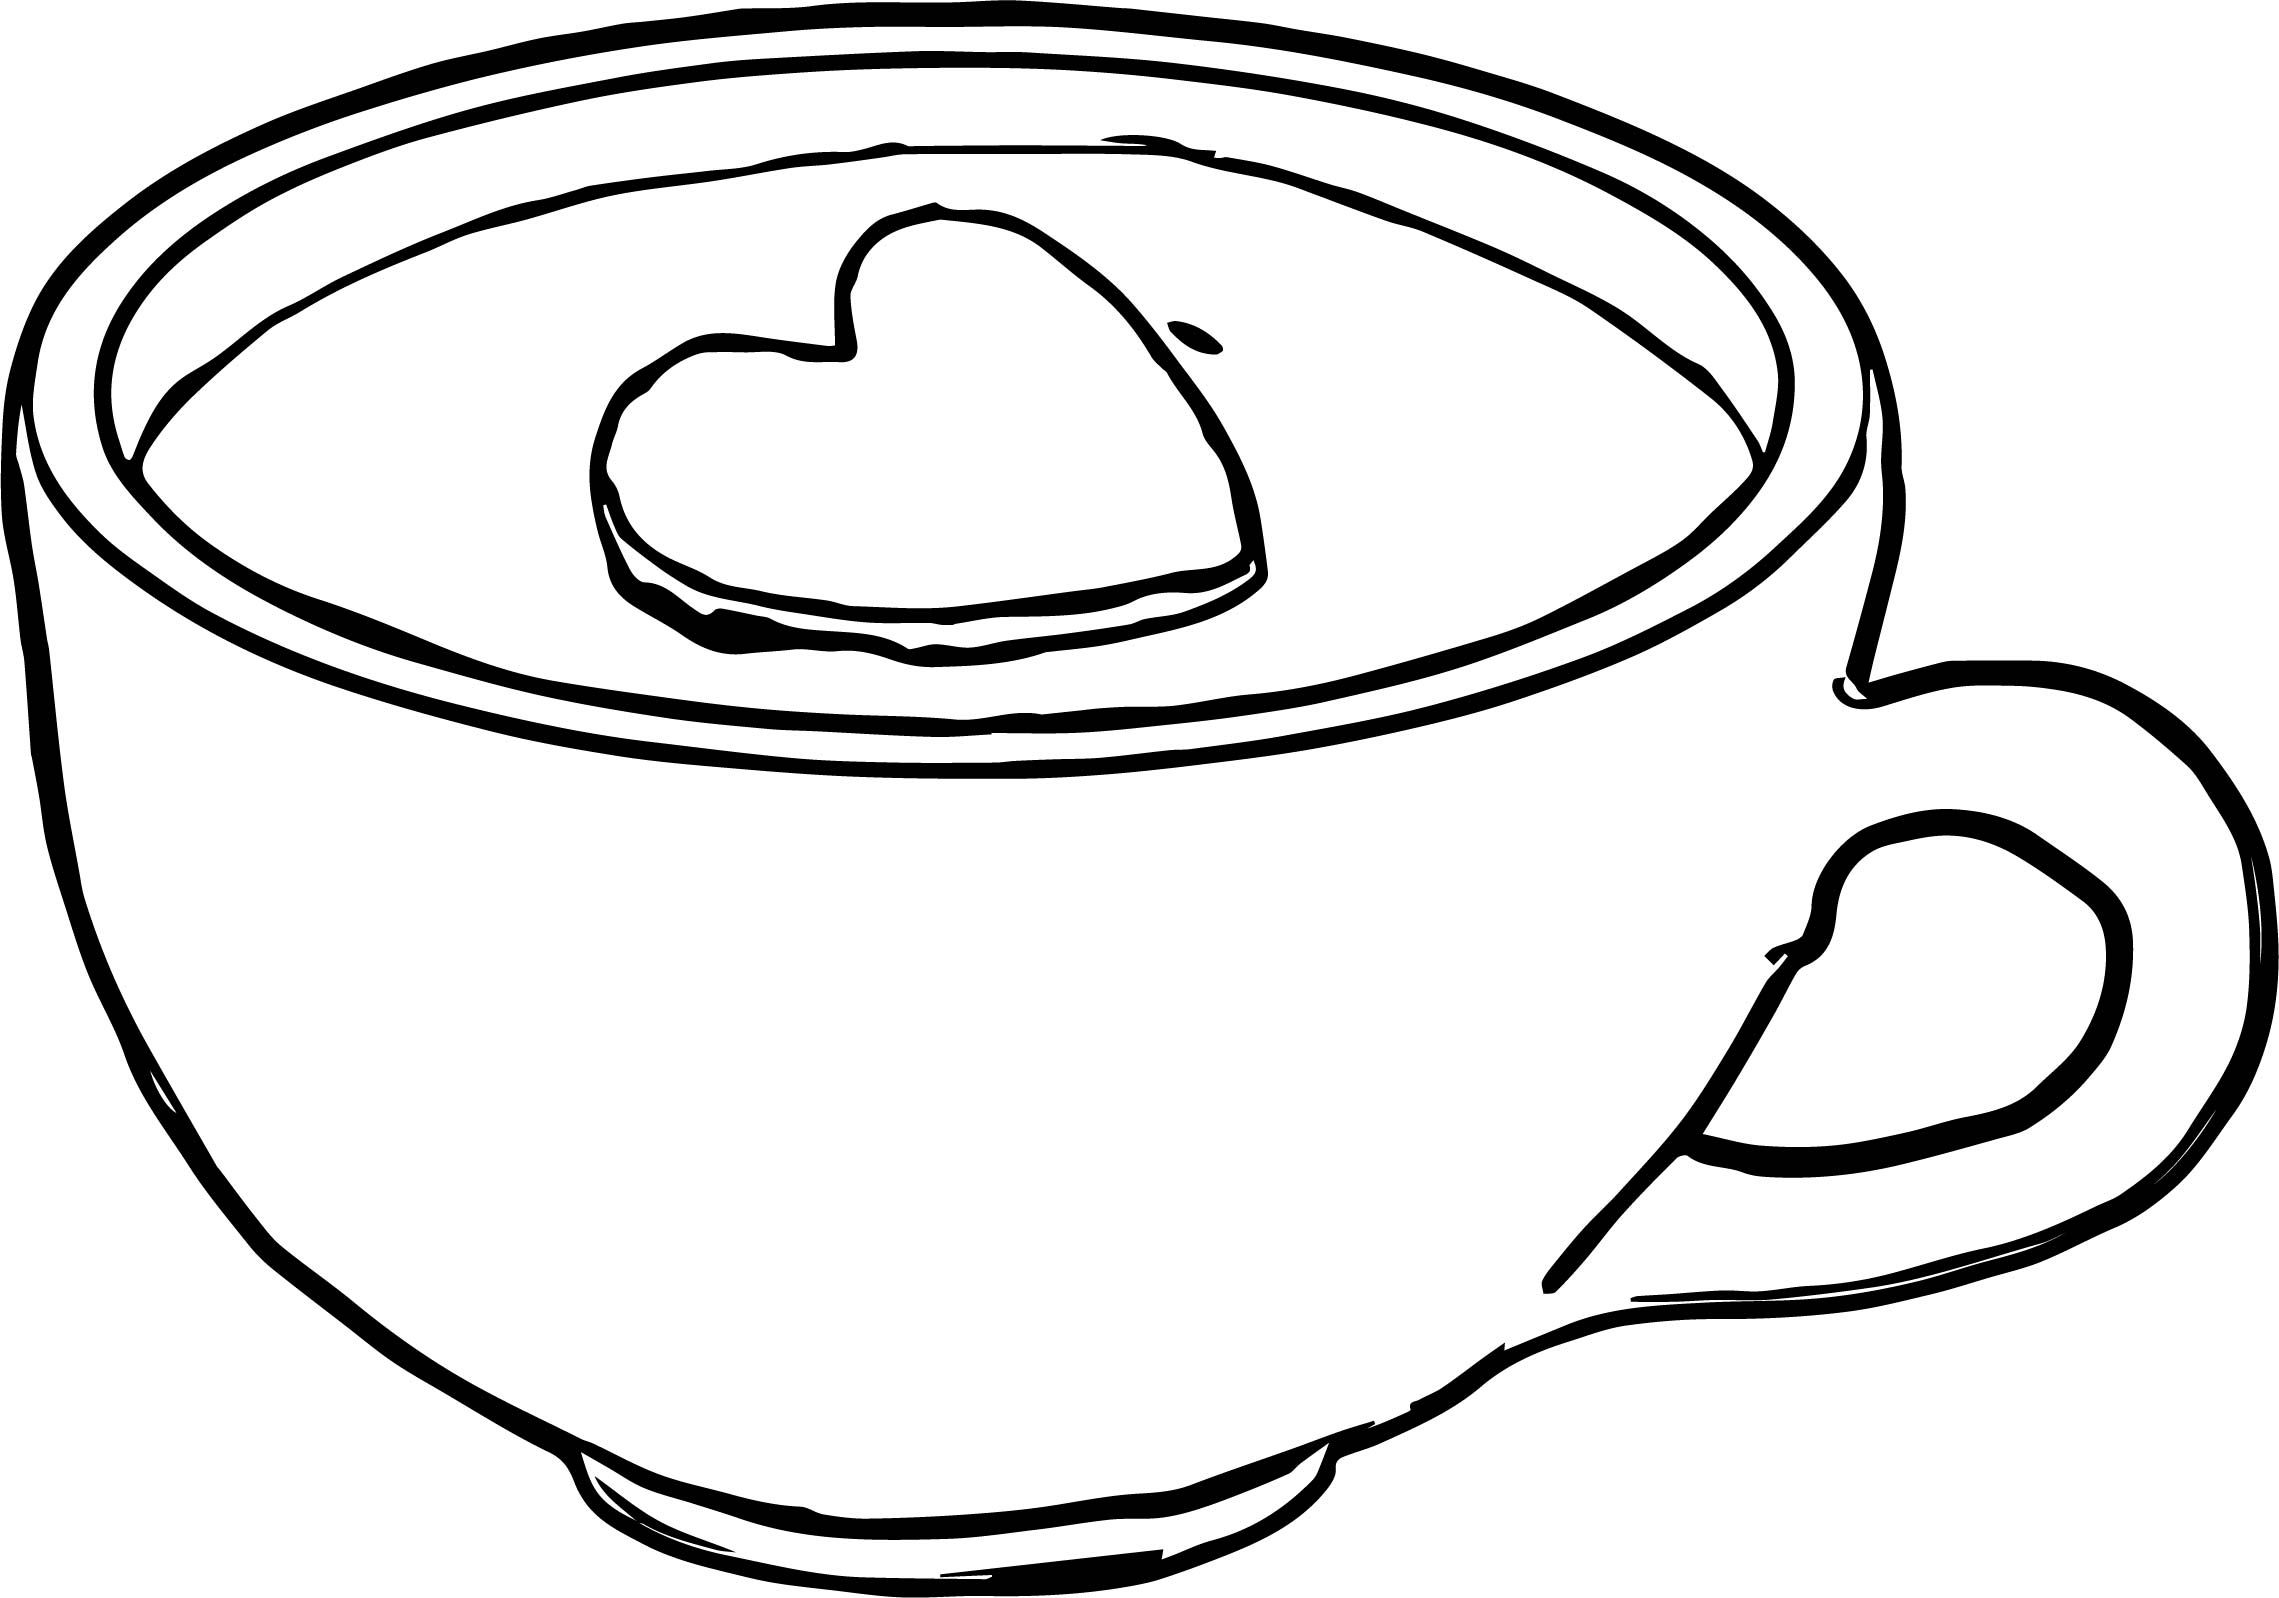 coffee cup coloring pages coffee cup coloring pages at getdrawings free download cup pages coffee coloring